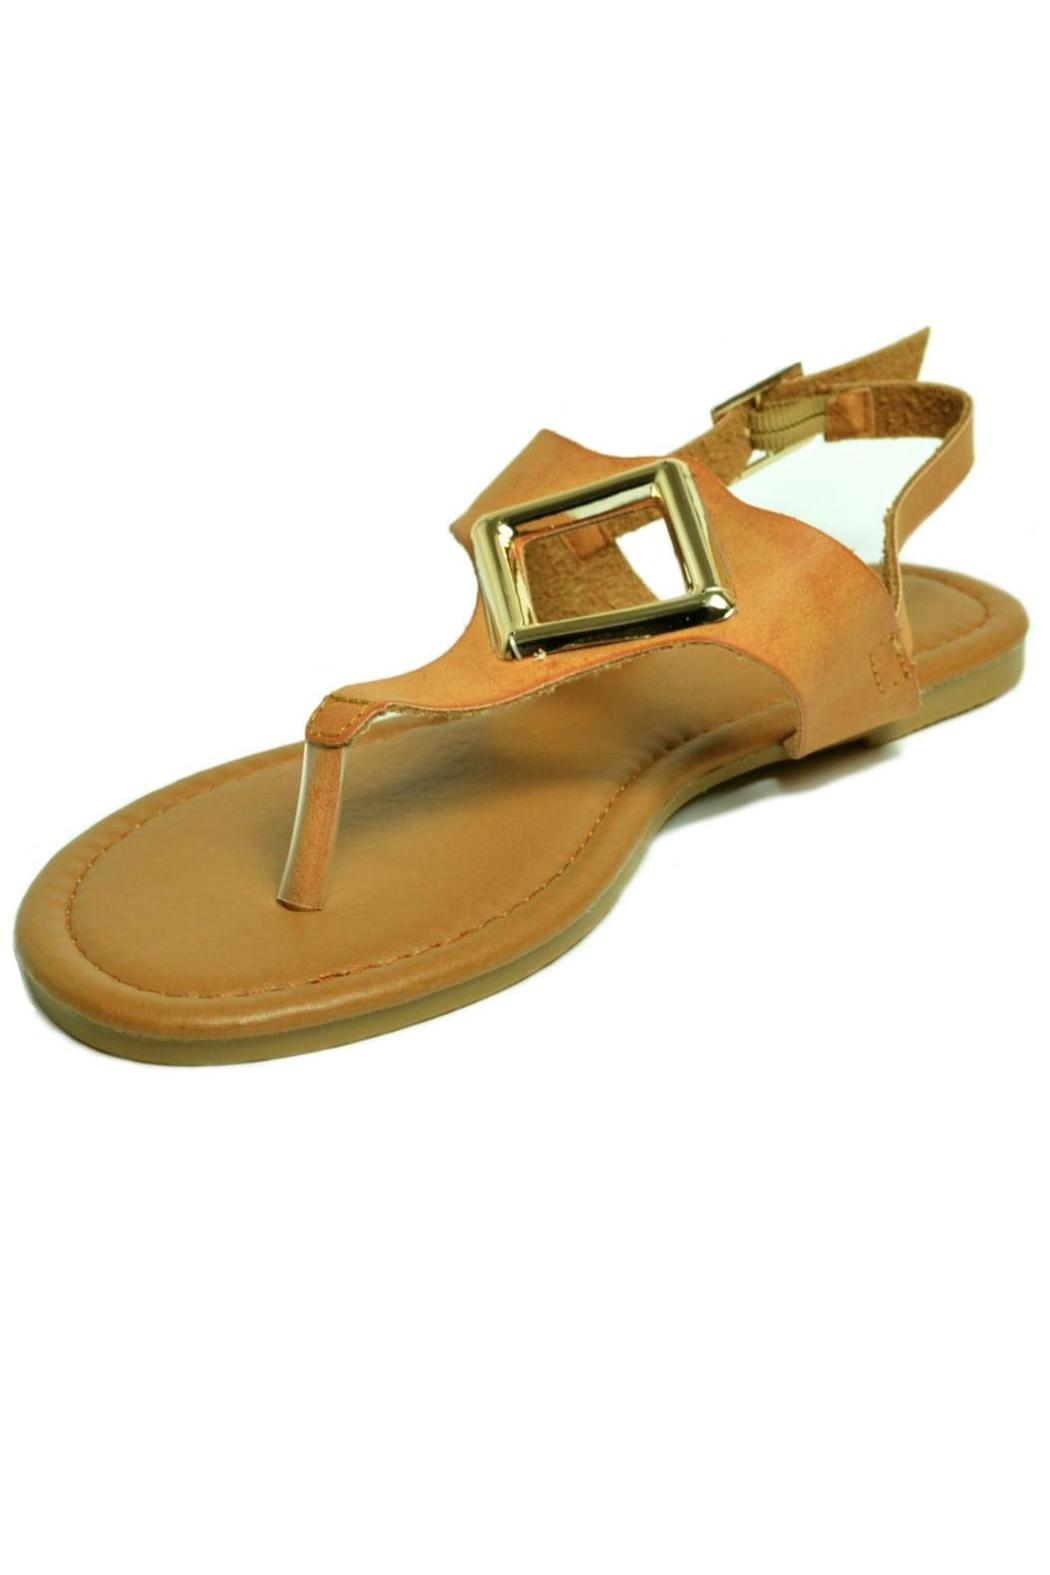 Qupid T-Strap, Metallic Ornament-Sandal - Front Full Image